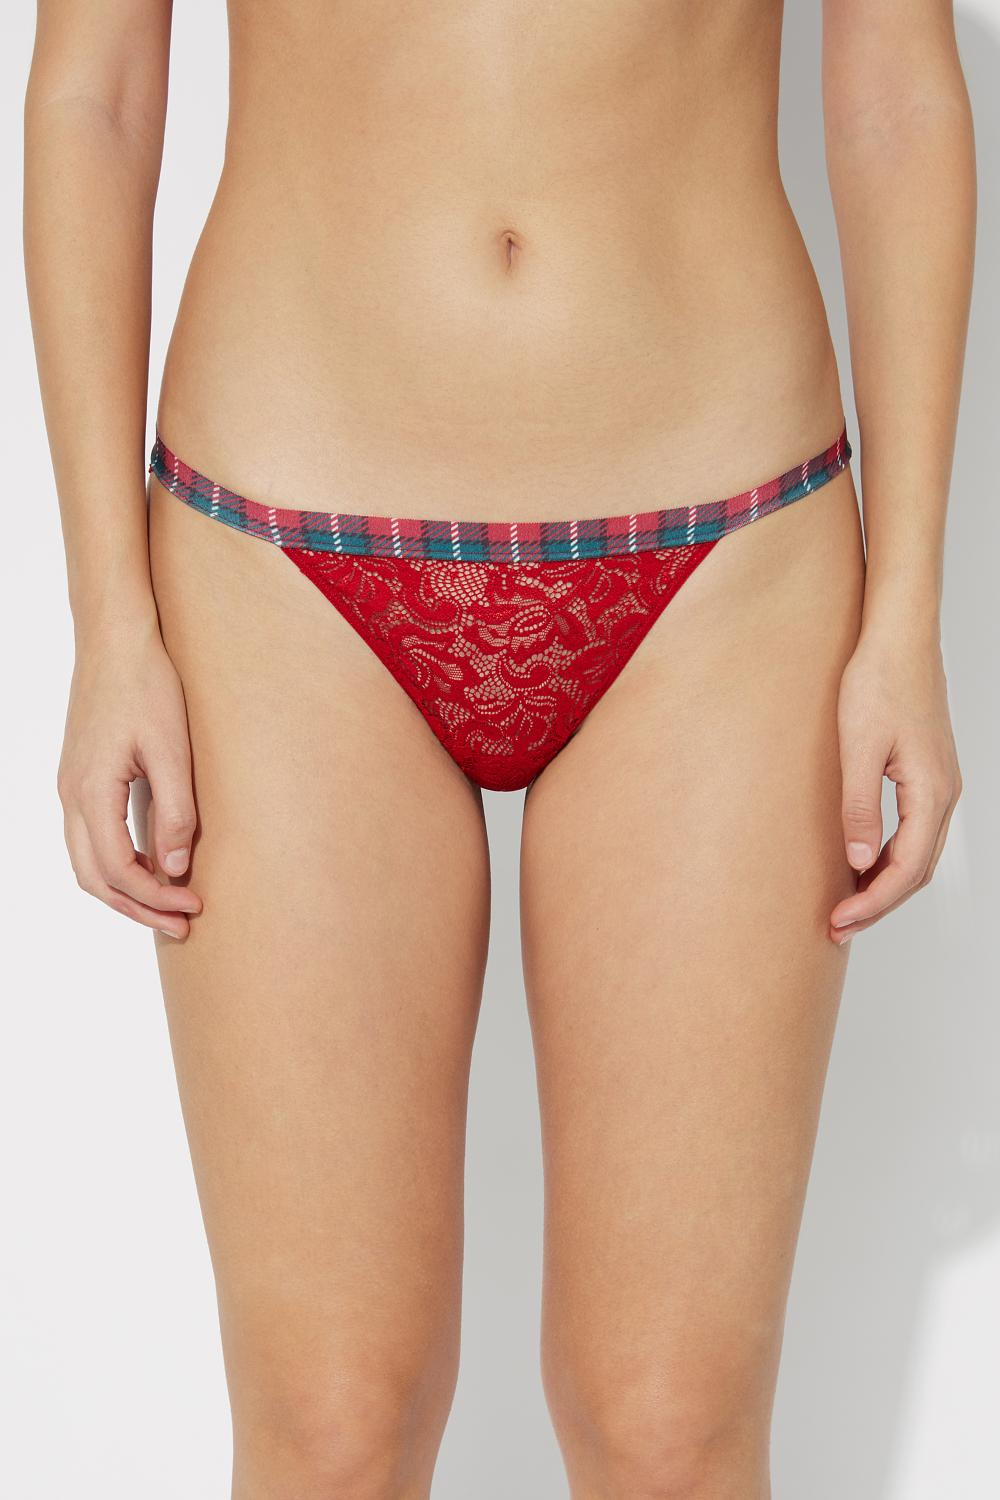 Brave Heart Cheeky Briefs